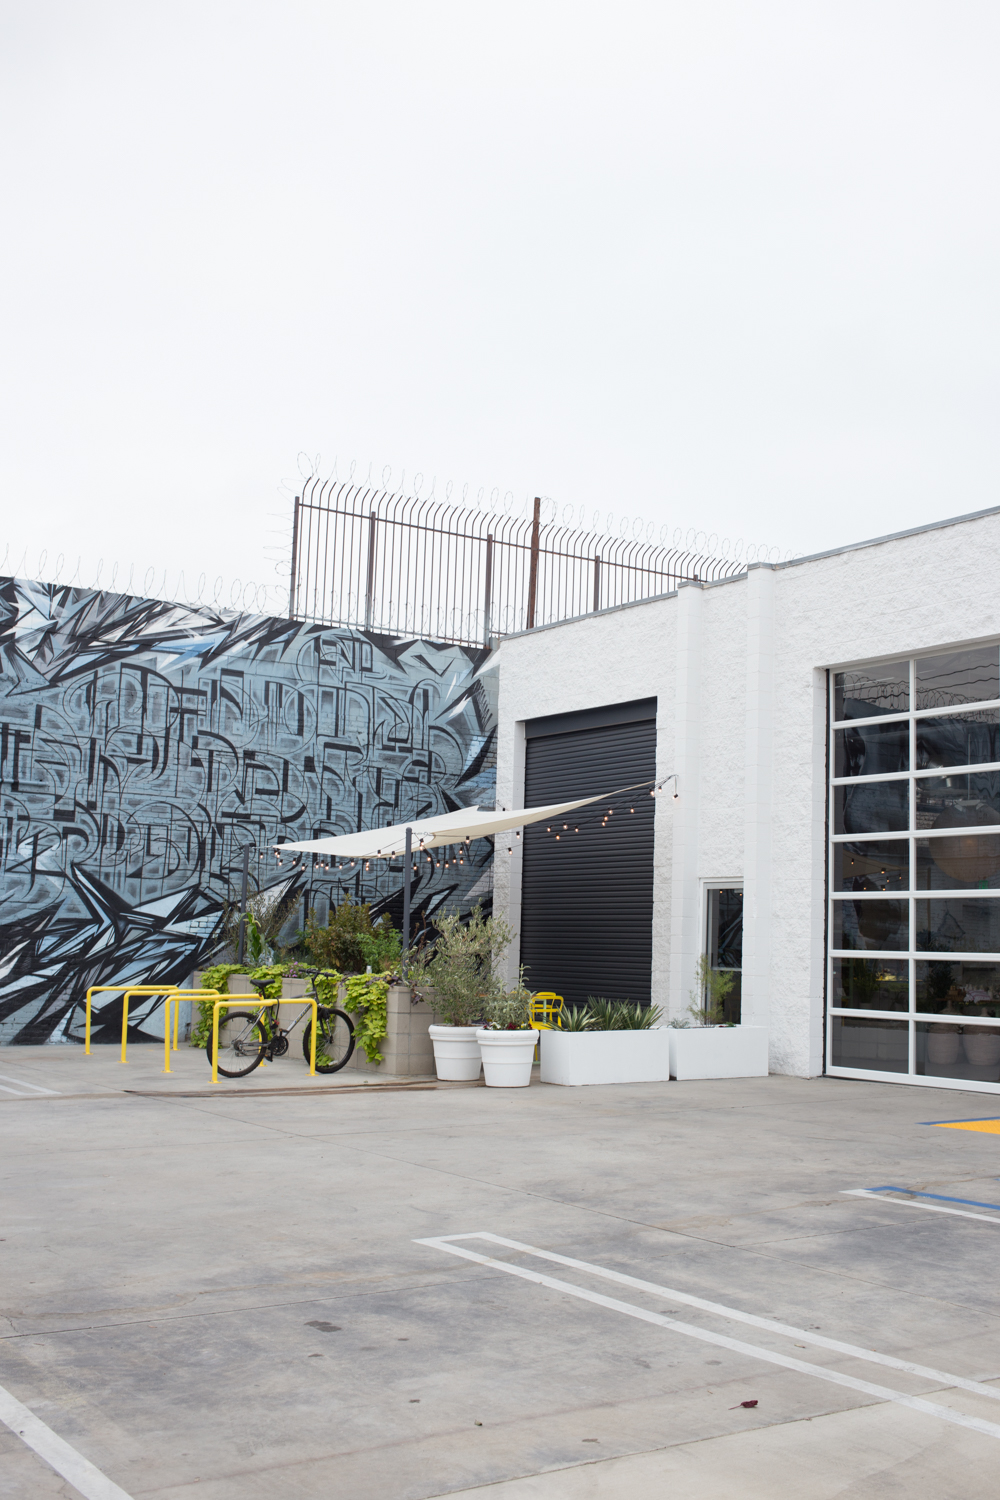 Ample parking in the lot with another mural.